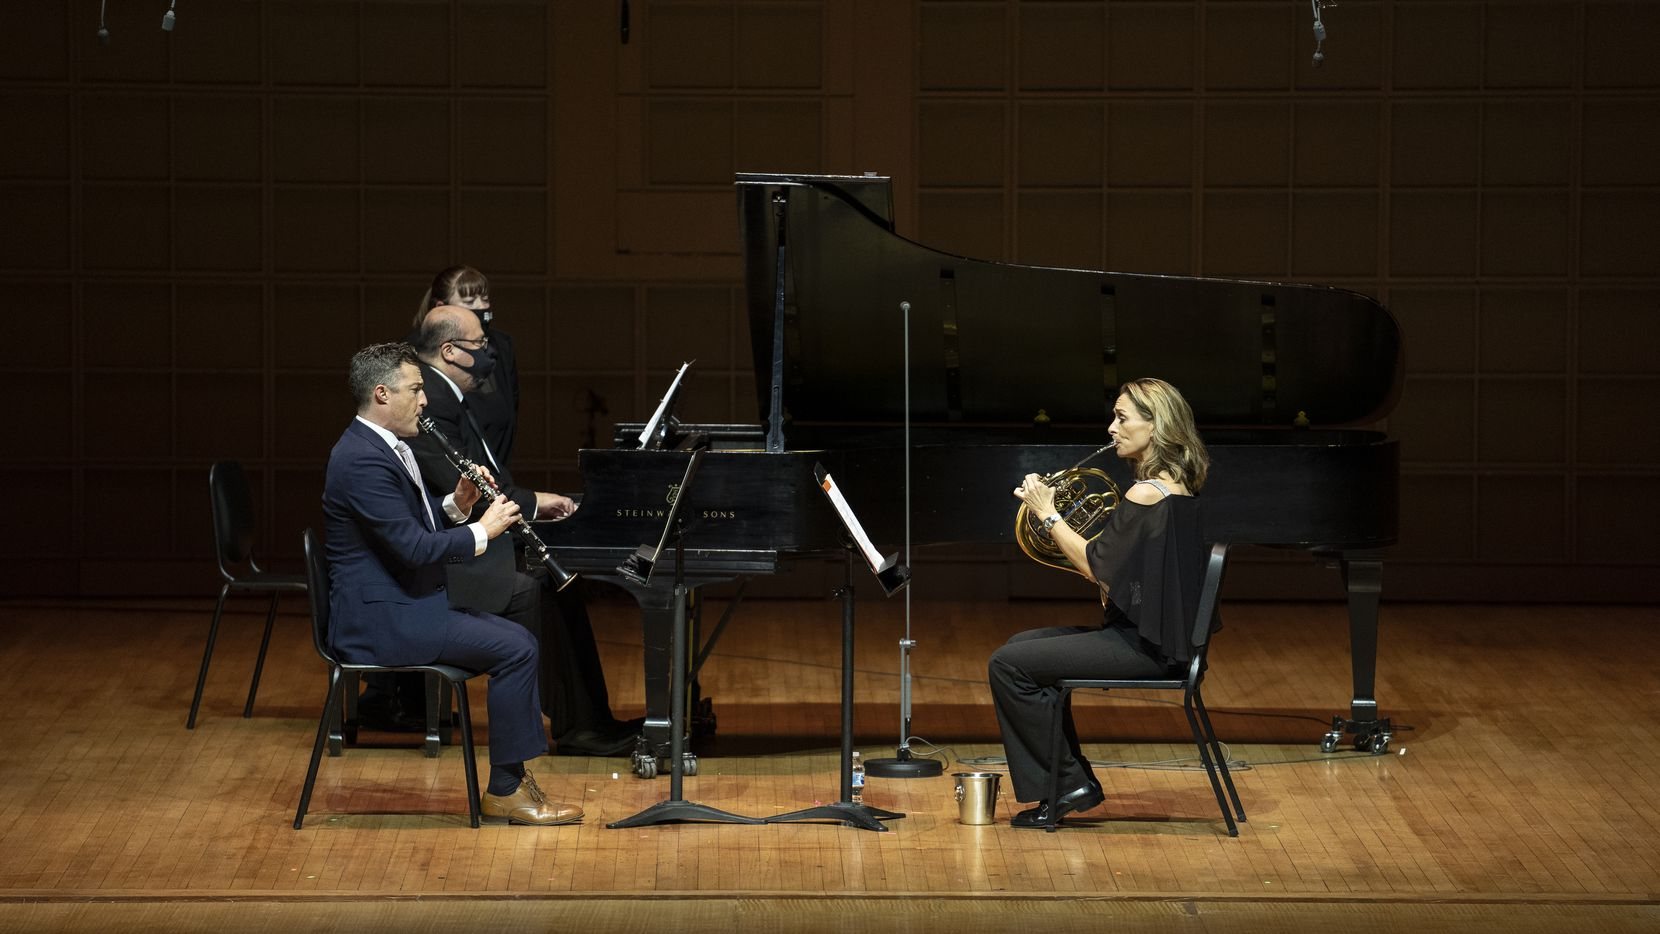 Stephen Ahearn (clarinet), Gabriel Sanchez (piano) and Haley Hoops (horn) perform the world premiere of Stacy Garrop's 'Slipstream' during the Women in Classical Music Chamber Concert at the Meyerson Symphony Center in Dallas on Nov. 9.